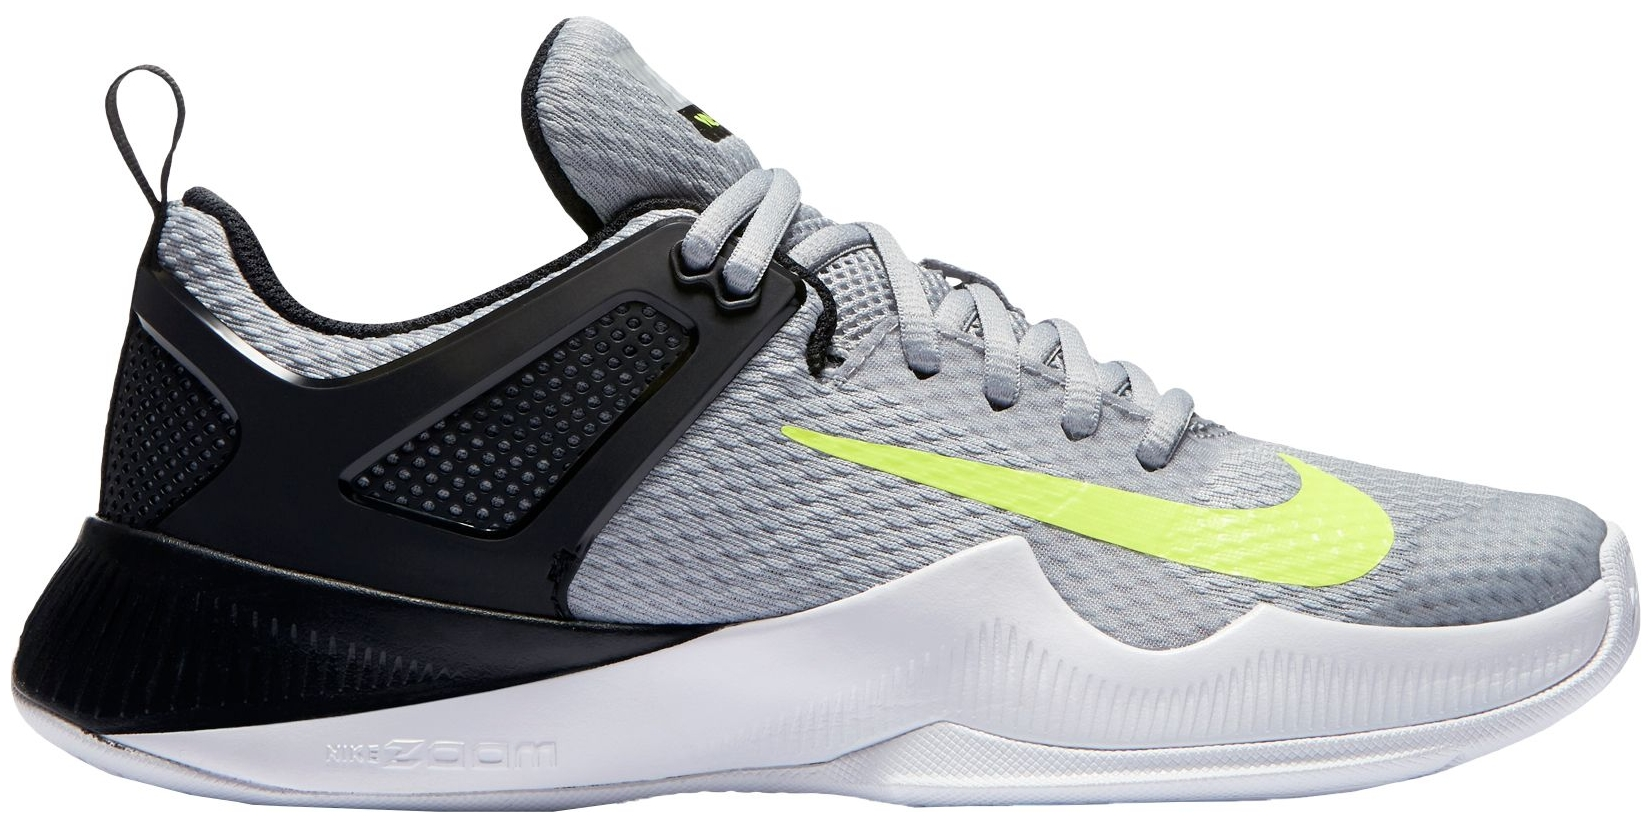 4e0e64f4369c8 ... coupon nike nike womens air zoom hyperace volleyball shoes grey volt  9.5 walmart 8026c 17431